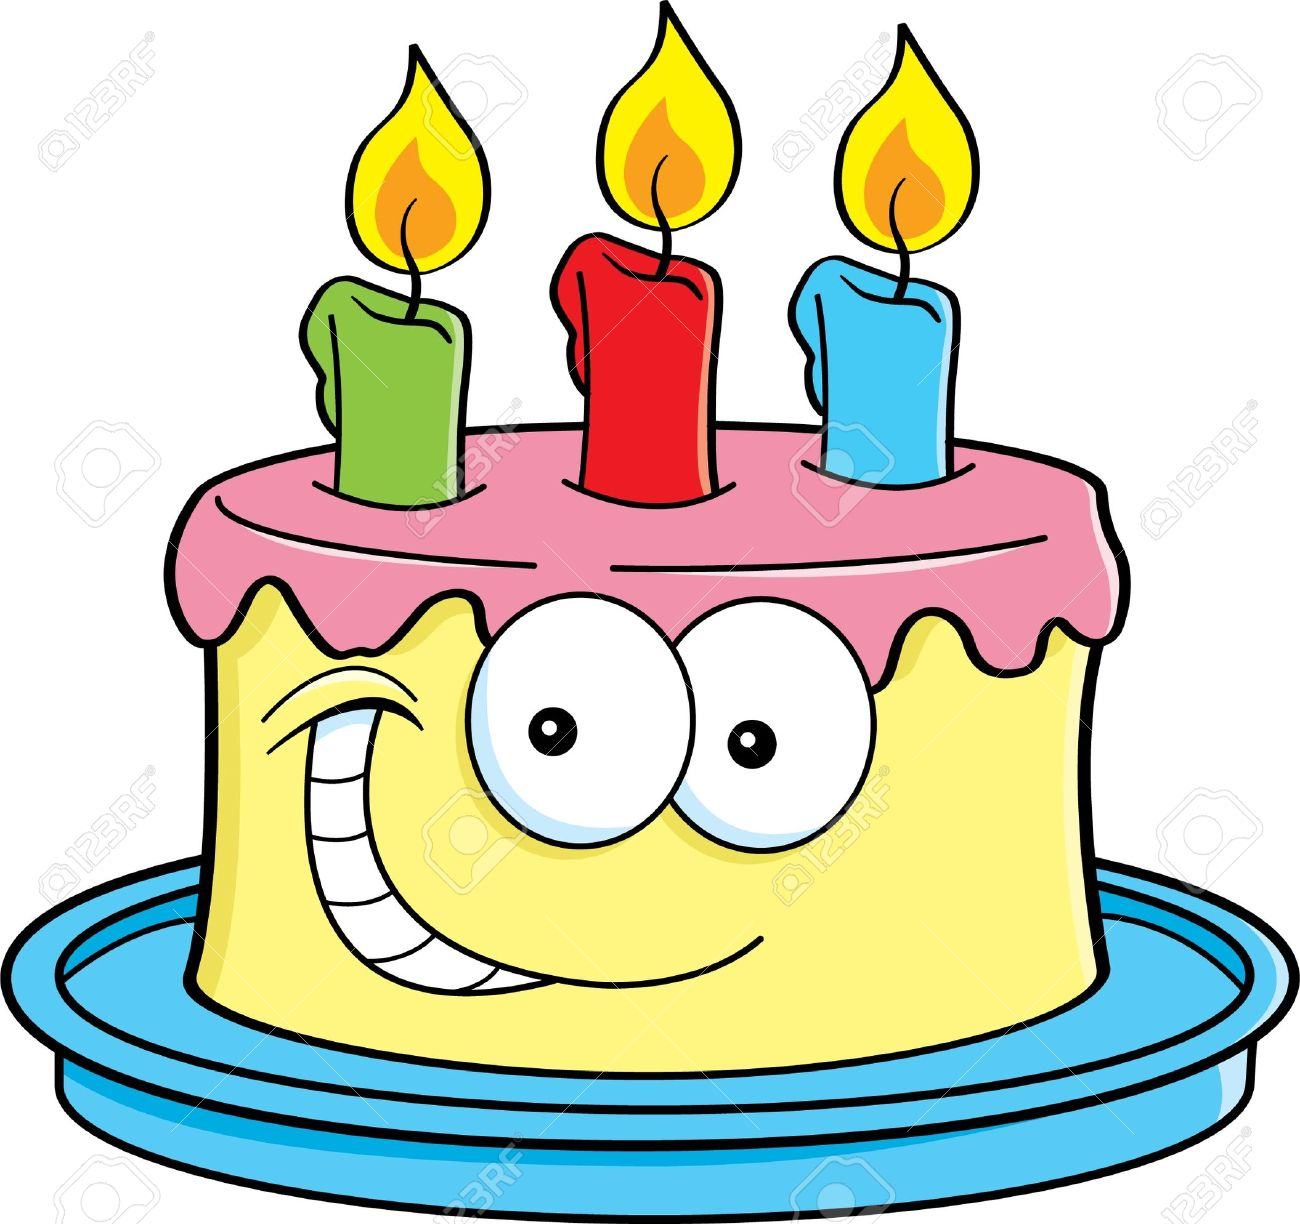 cartoon illustration of a cake with candles royalty free cliparts rh 123rf com cartoon cake images with name cartoon cake pictures